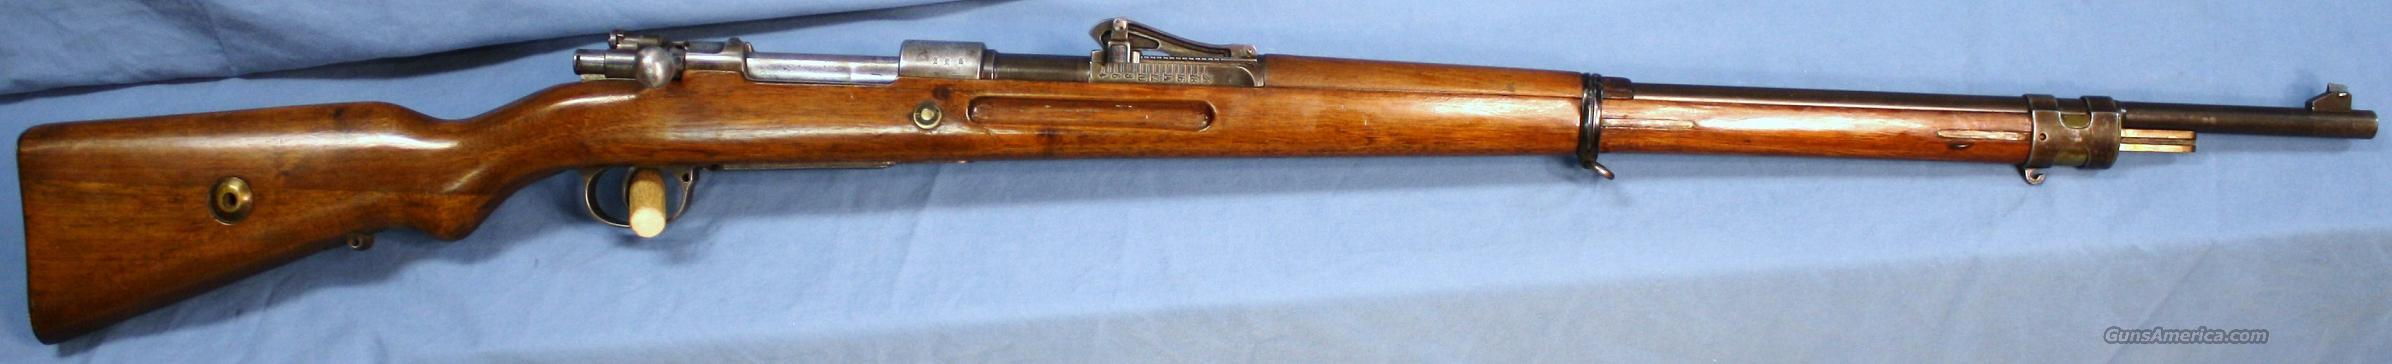 Mauser GEW 98 WWI German Army Bolt Action Rifle 8mm Made in 1915  Guns > Rifles > Mauser Rifles > German